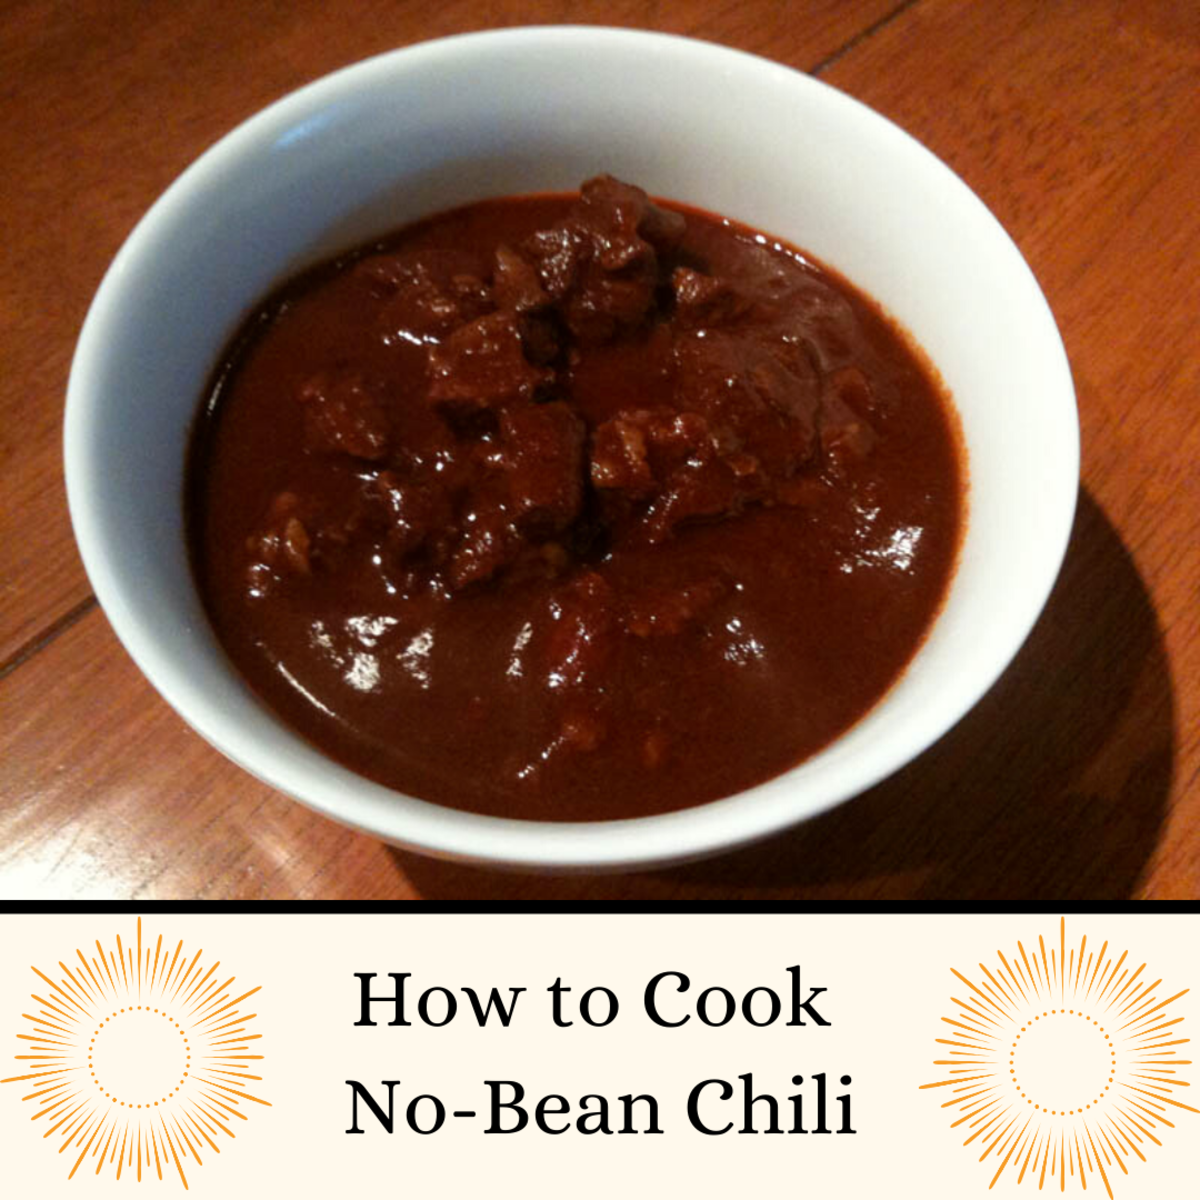 No-bean chili is a Texas treat. Read on to see just how easy it is to make.